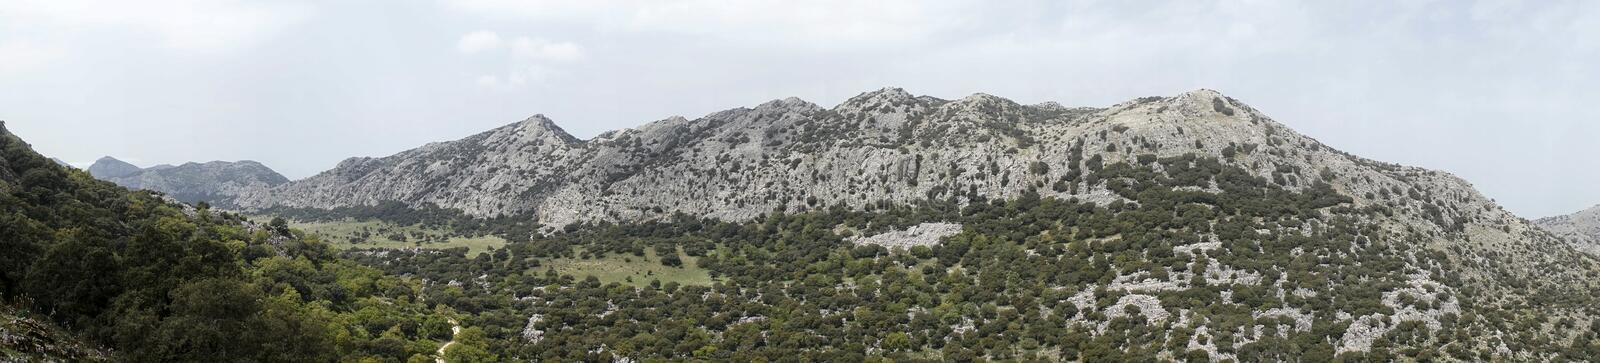 Grazalema natural park in the province of Cadiz, Andalusia, Spain royalty free stock images